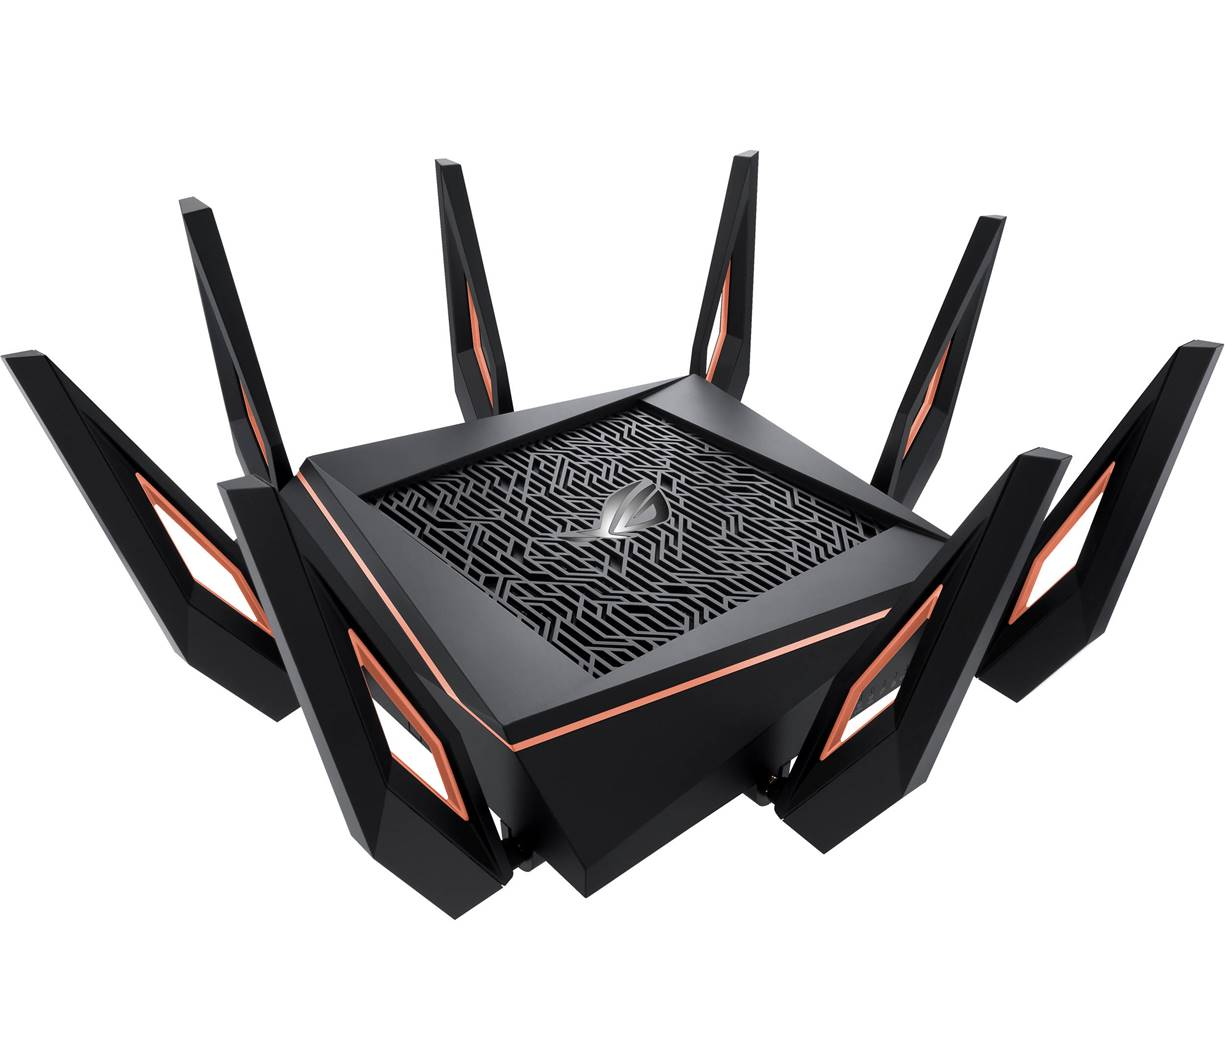 ASUS AC5300 Gaming Router